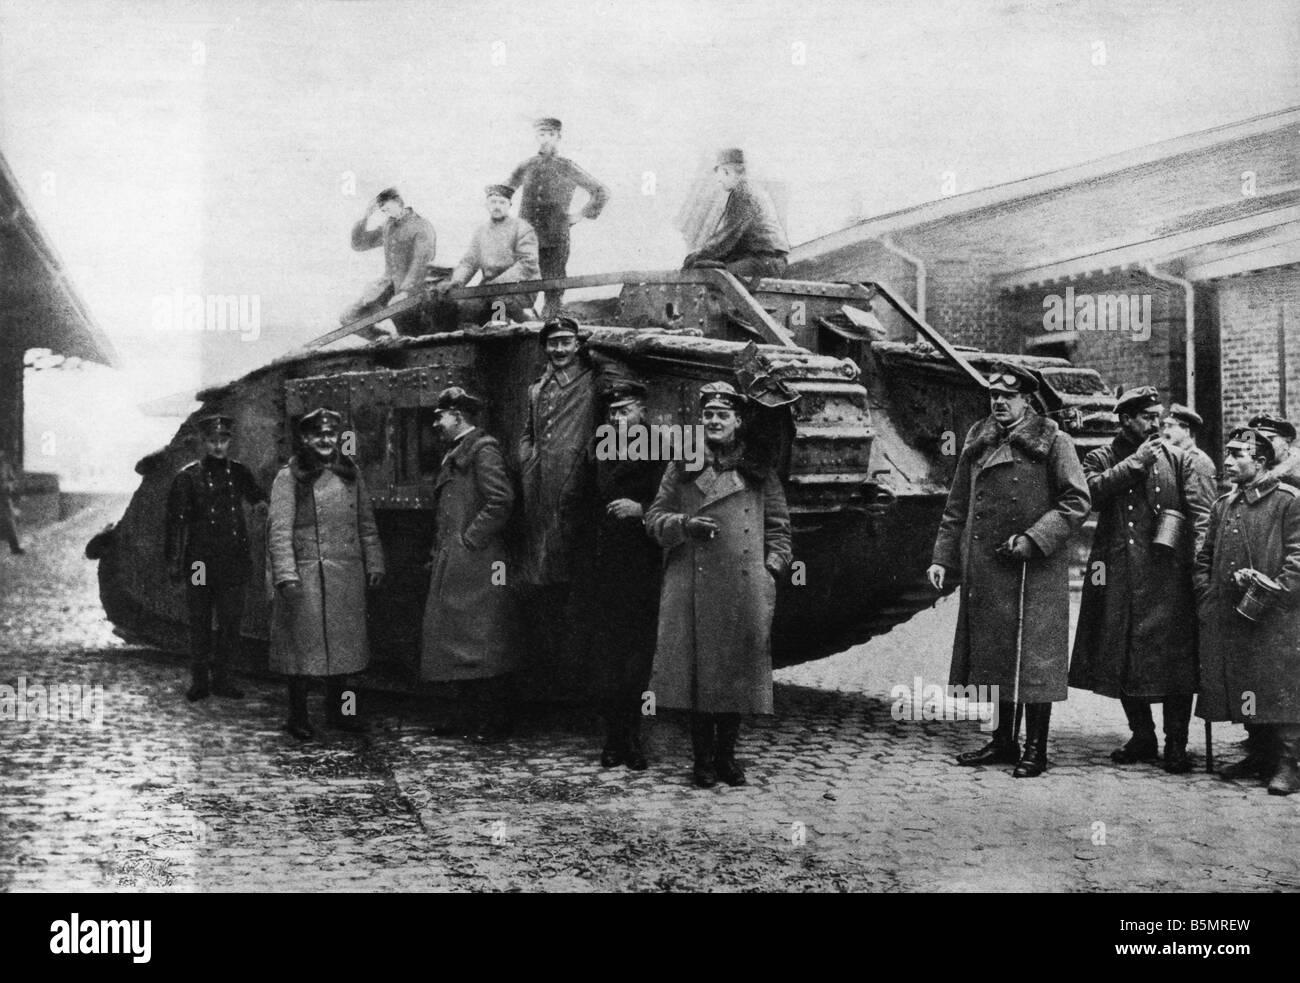 9 1917 11 20 A2 26 E WW1 Ger tank recovery station Cambrai World War 1 1914 18 France Battle of Cambrai 20th 29th - Stock Image